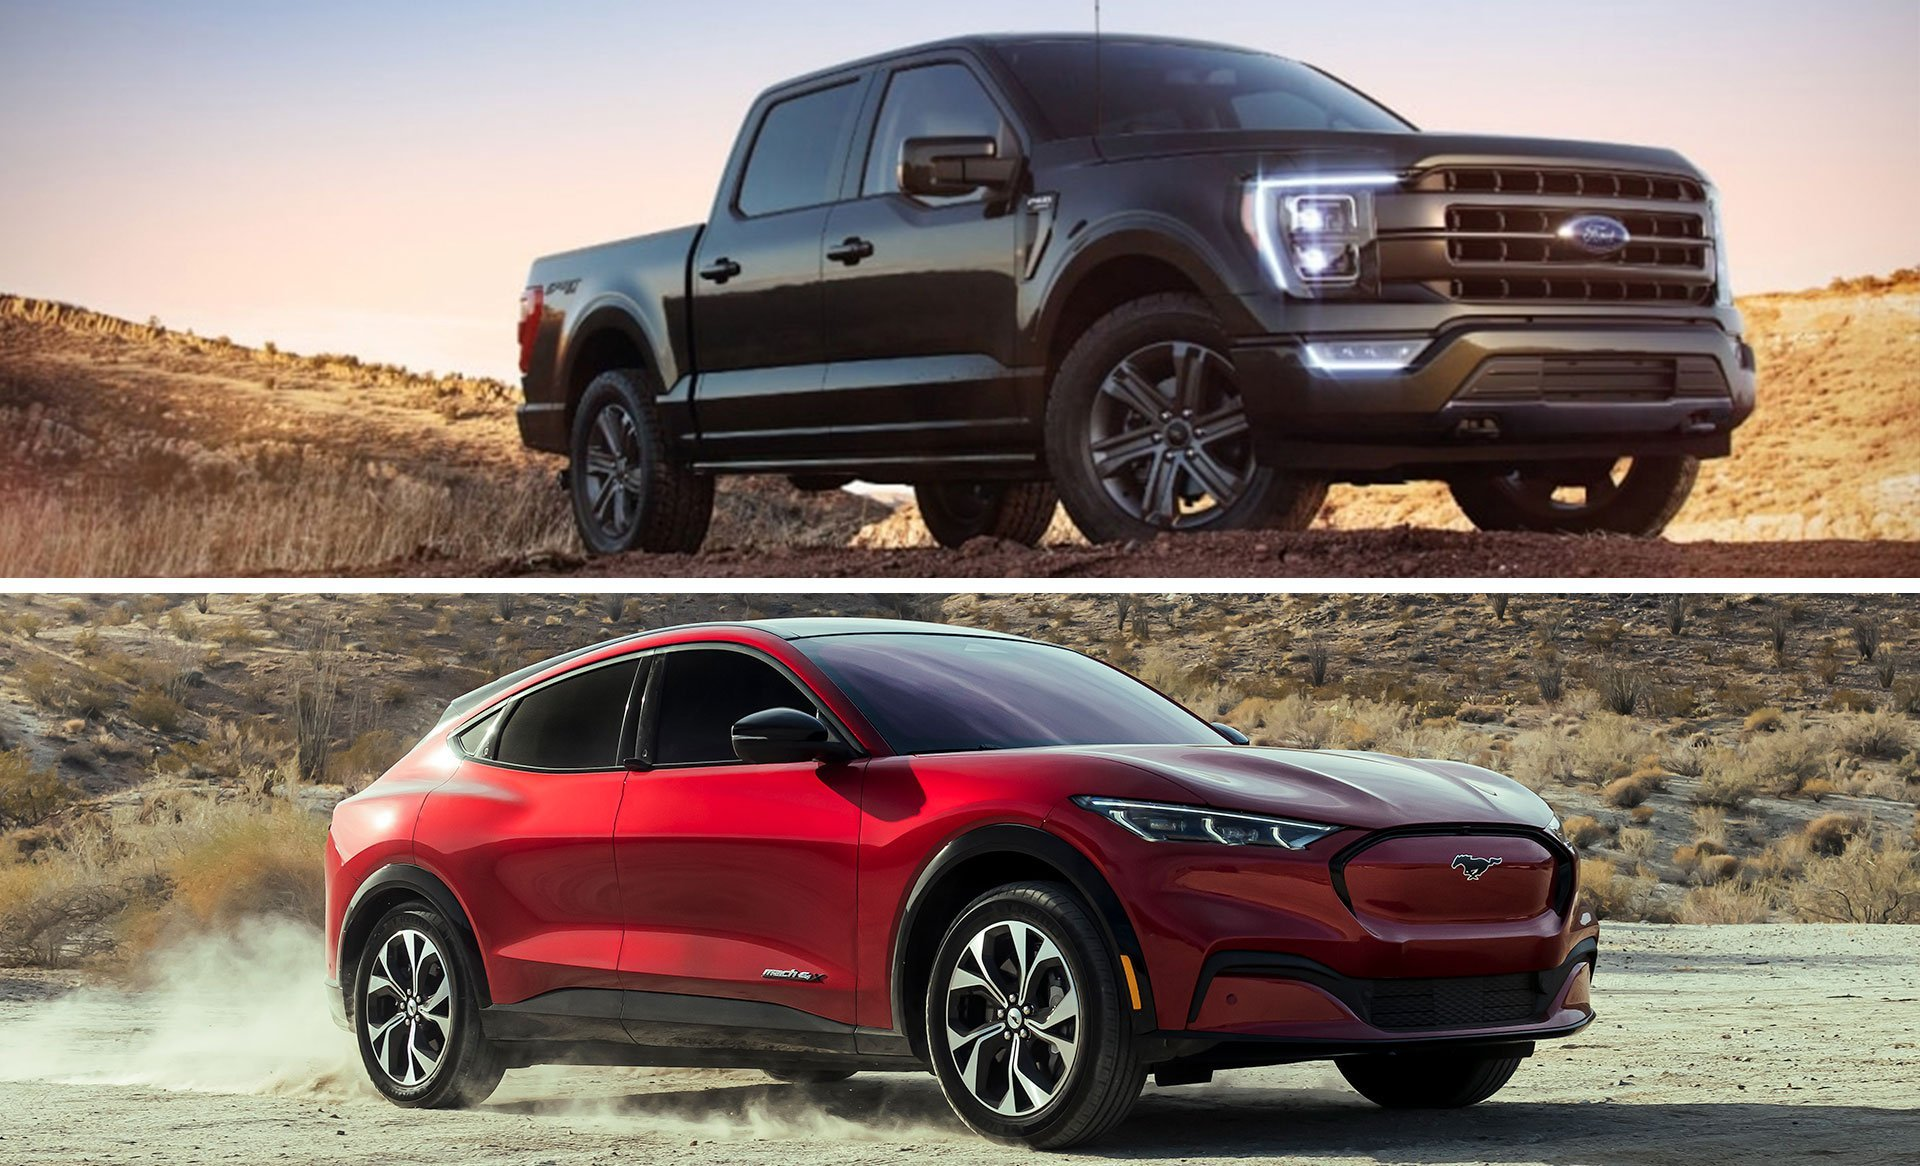 Ford F-150 and Mustang Mach E collage